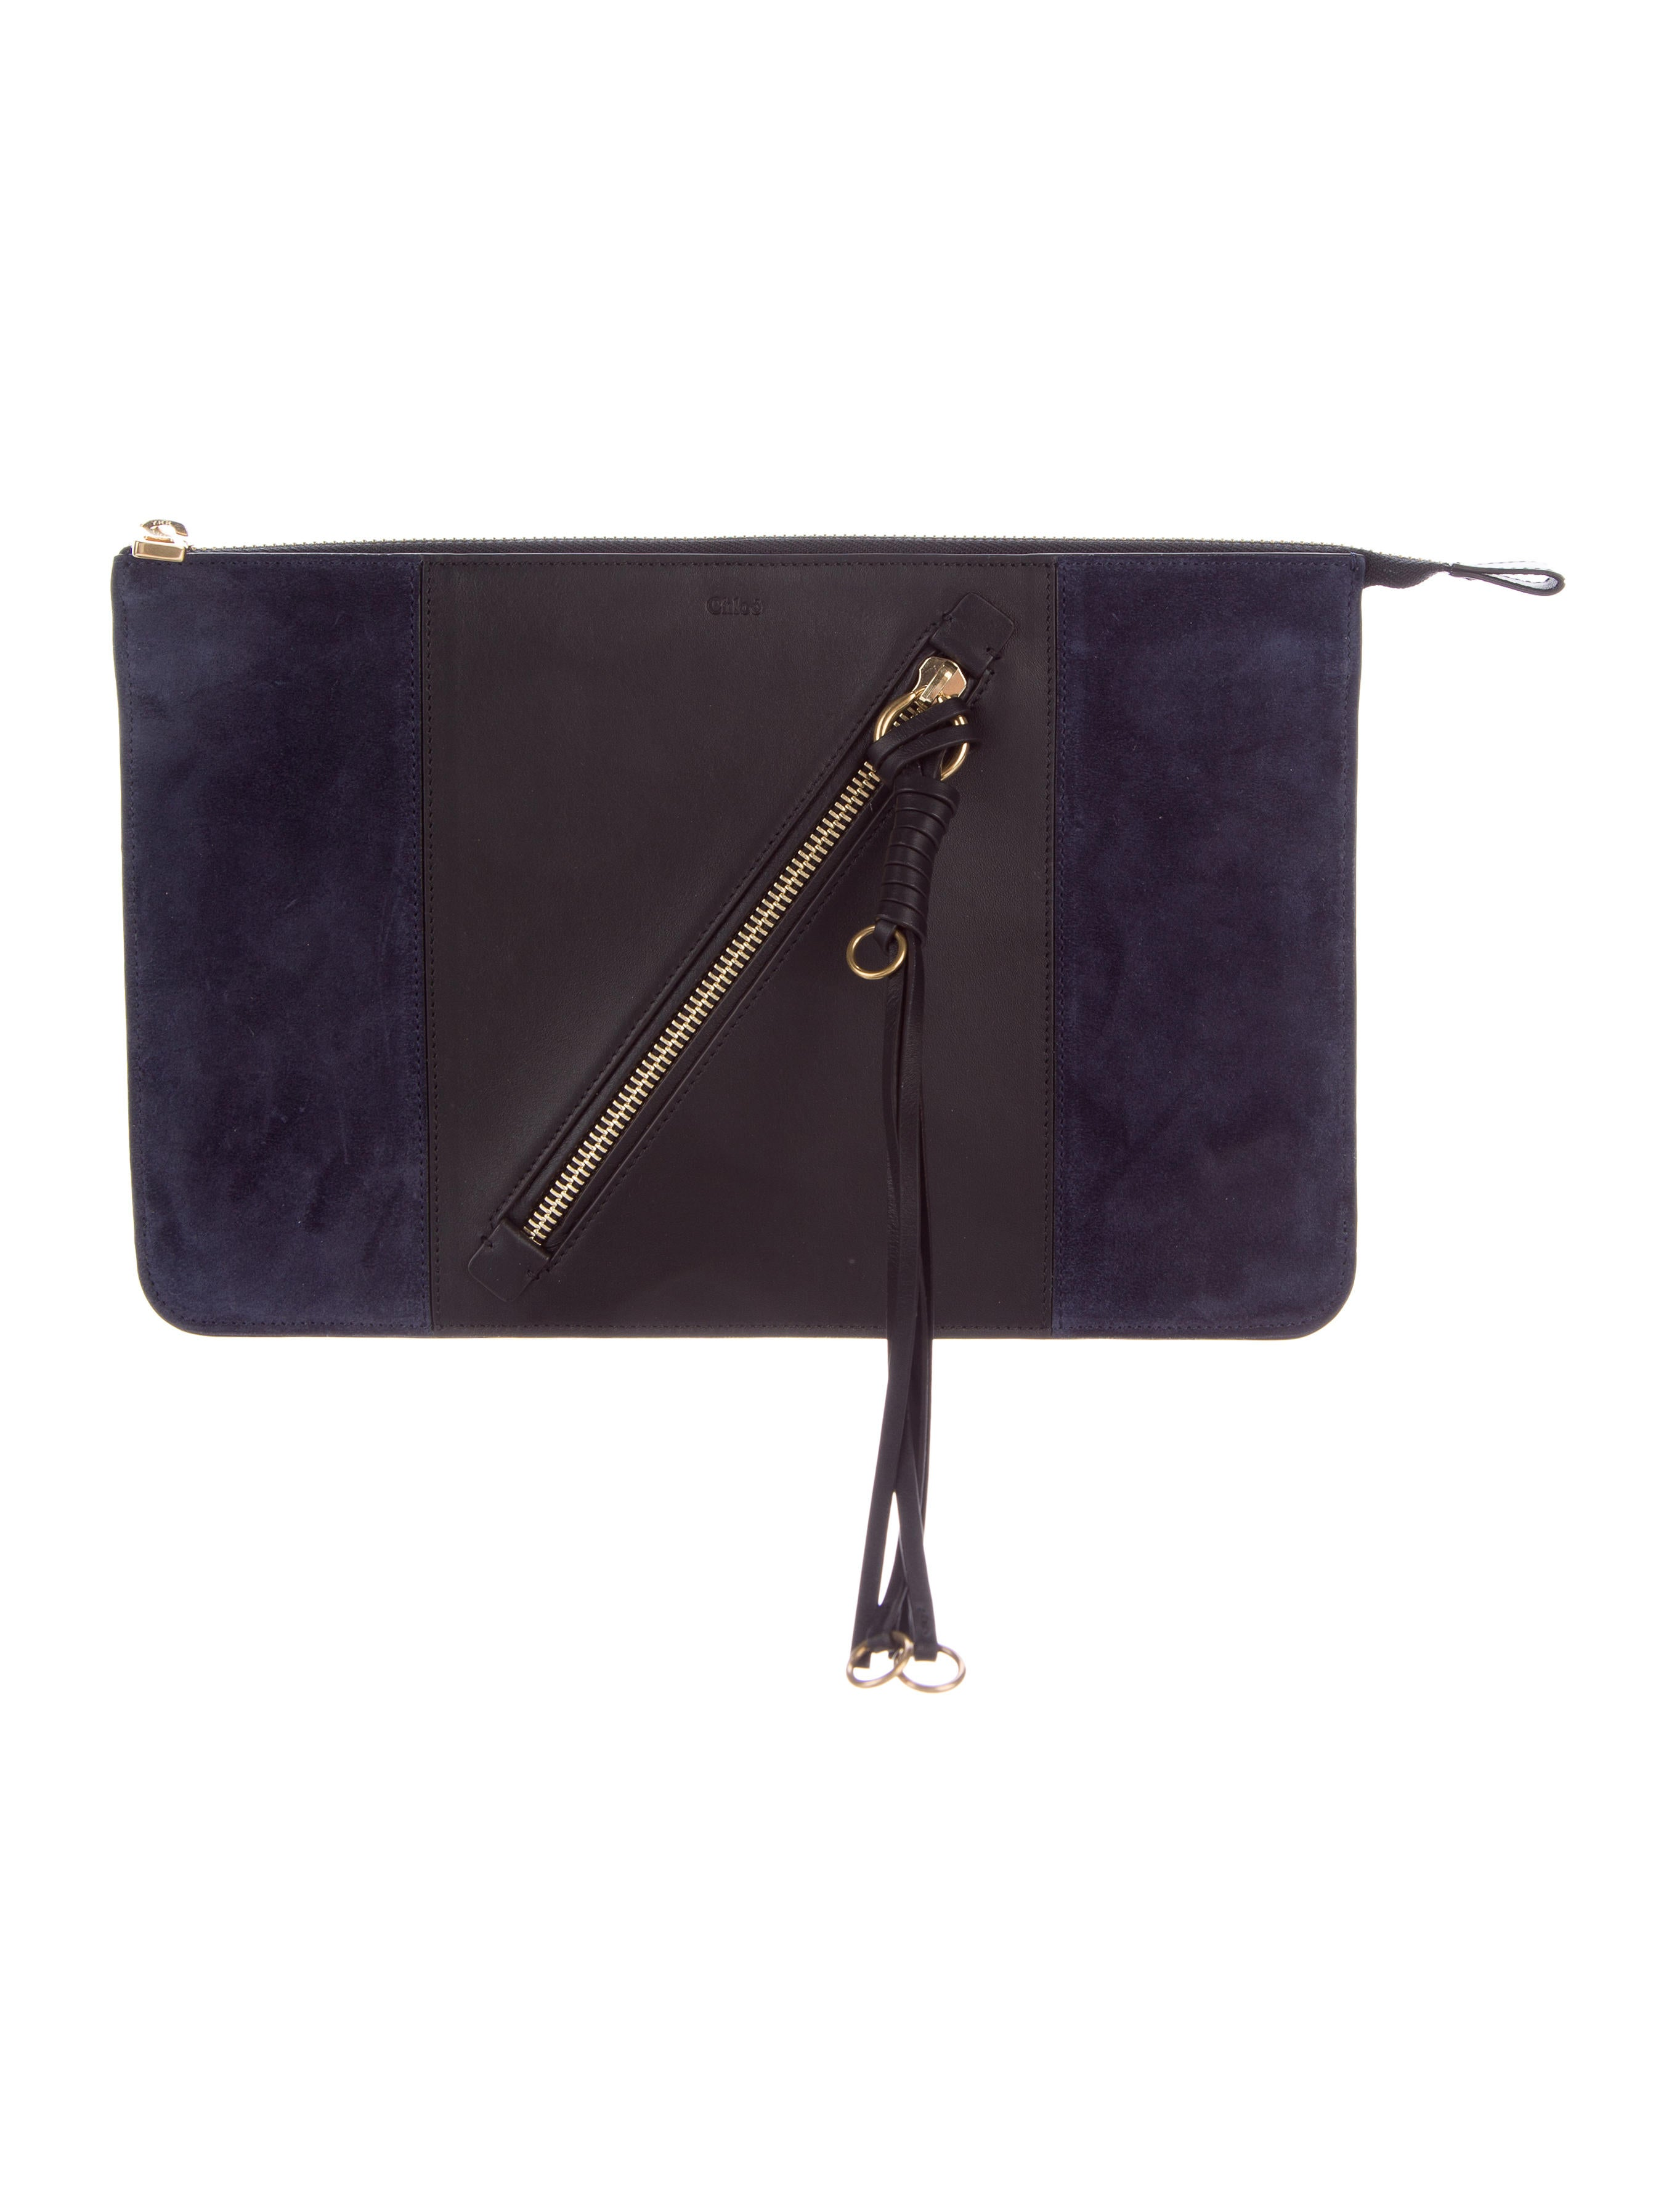 2017 Myer Suede Leather Pouch